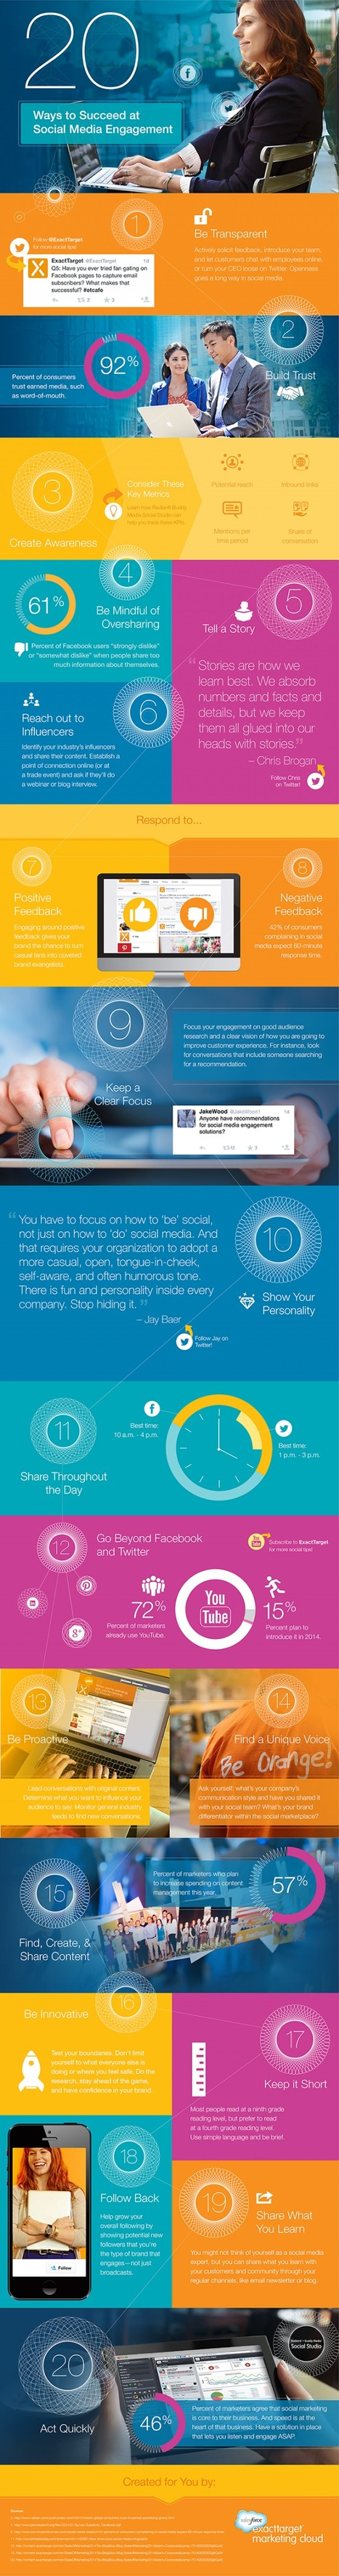 20 Ways to Succeed at Social Media Engagement [Infographic] | Everything Marketing You Can Think Of | Scoop.it